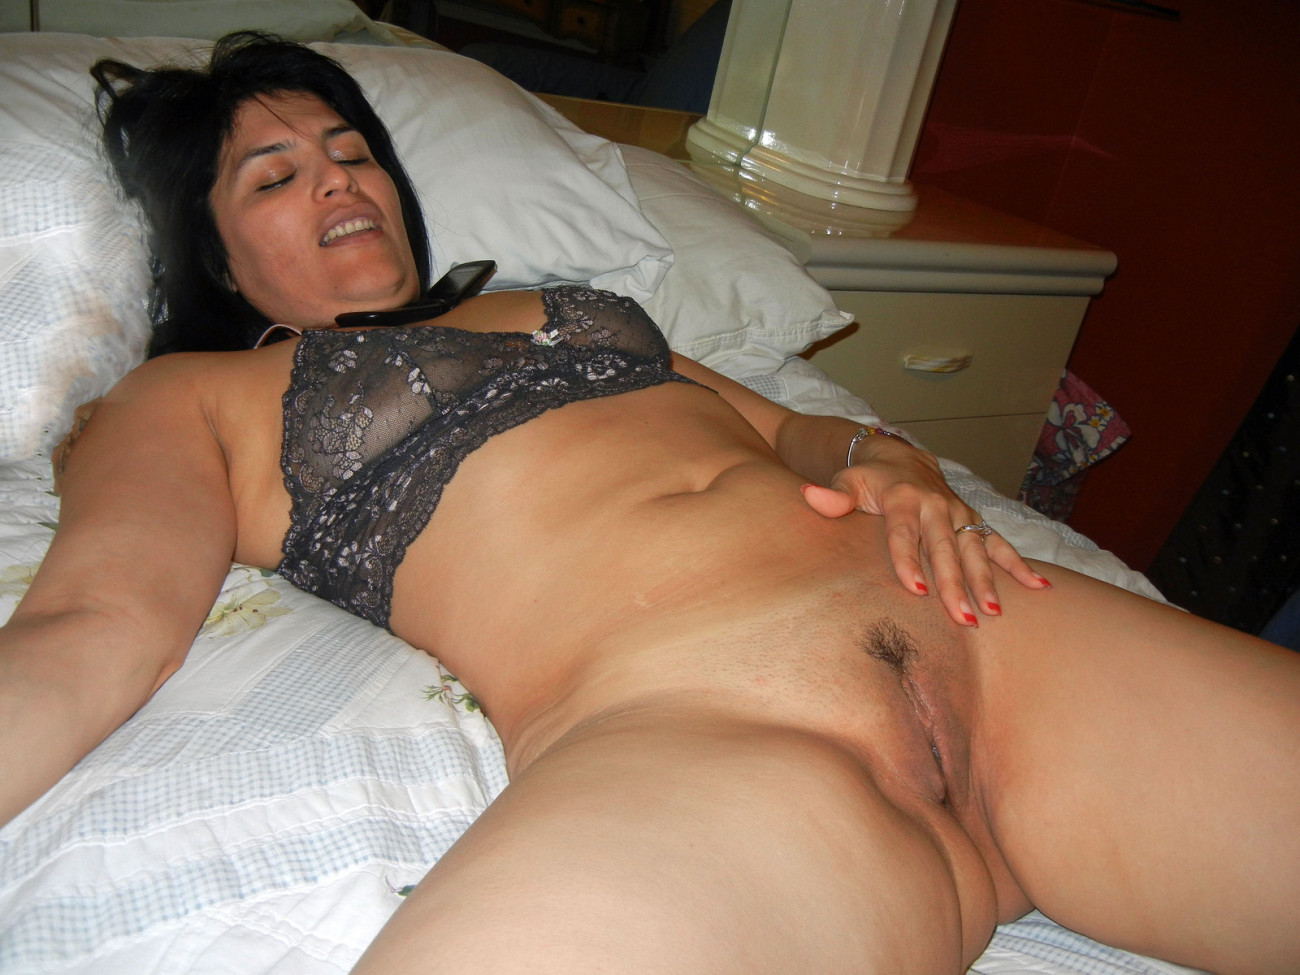 Hot curvy latin milf gets naked outside